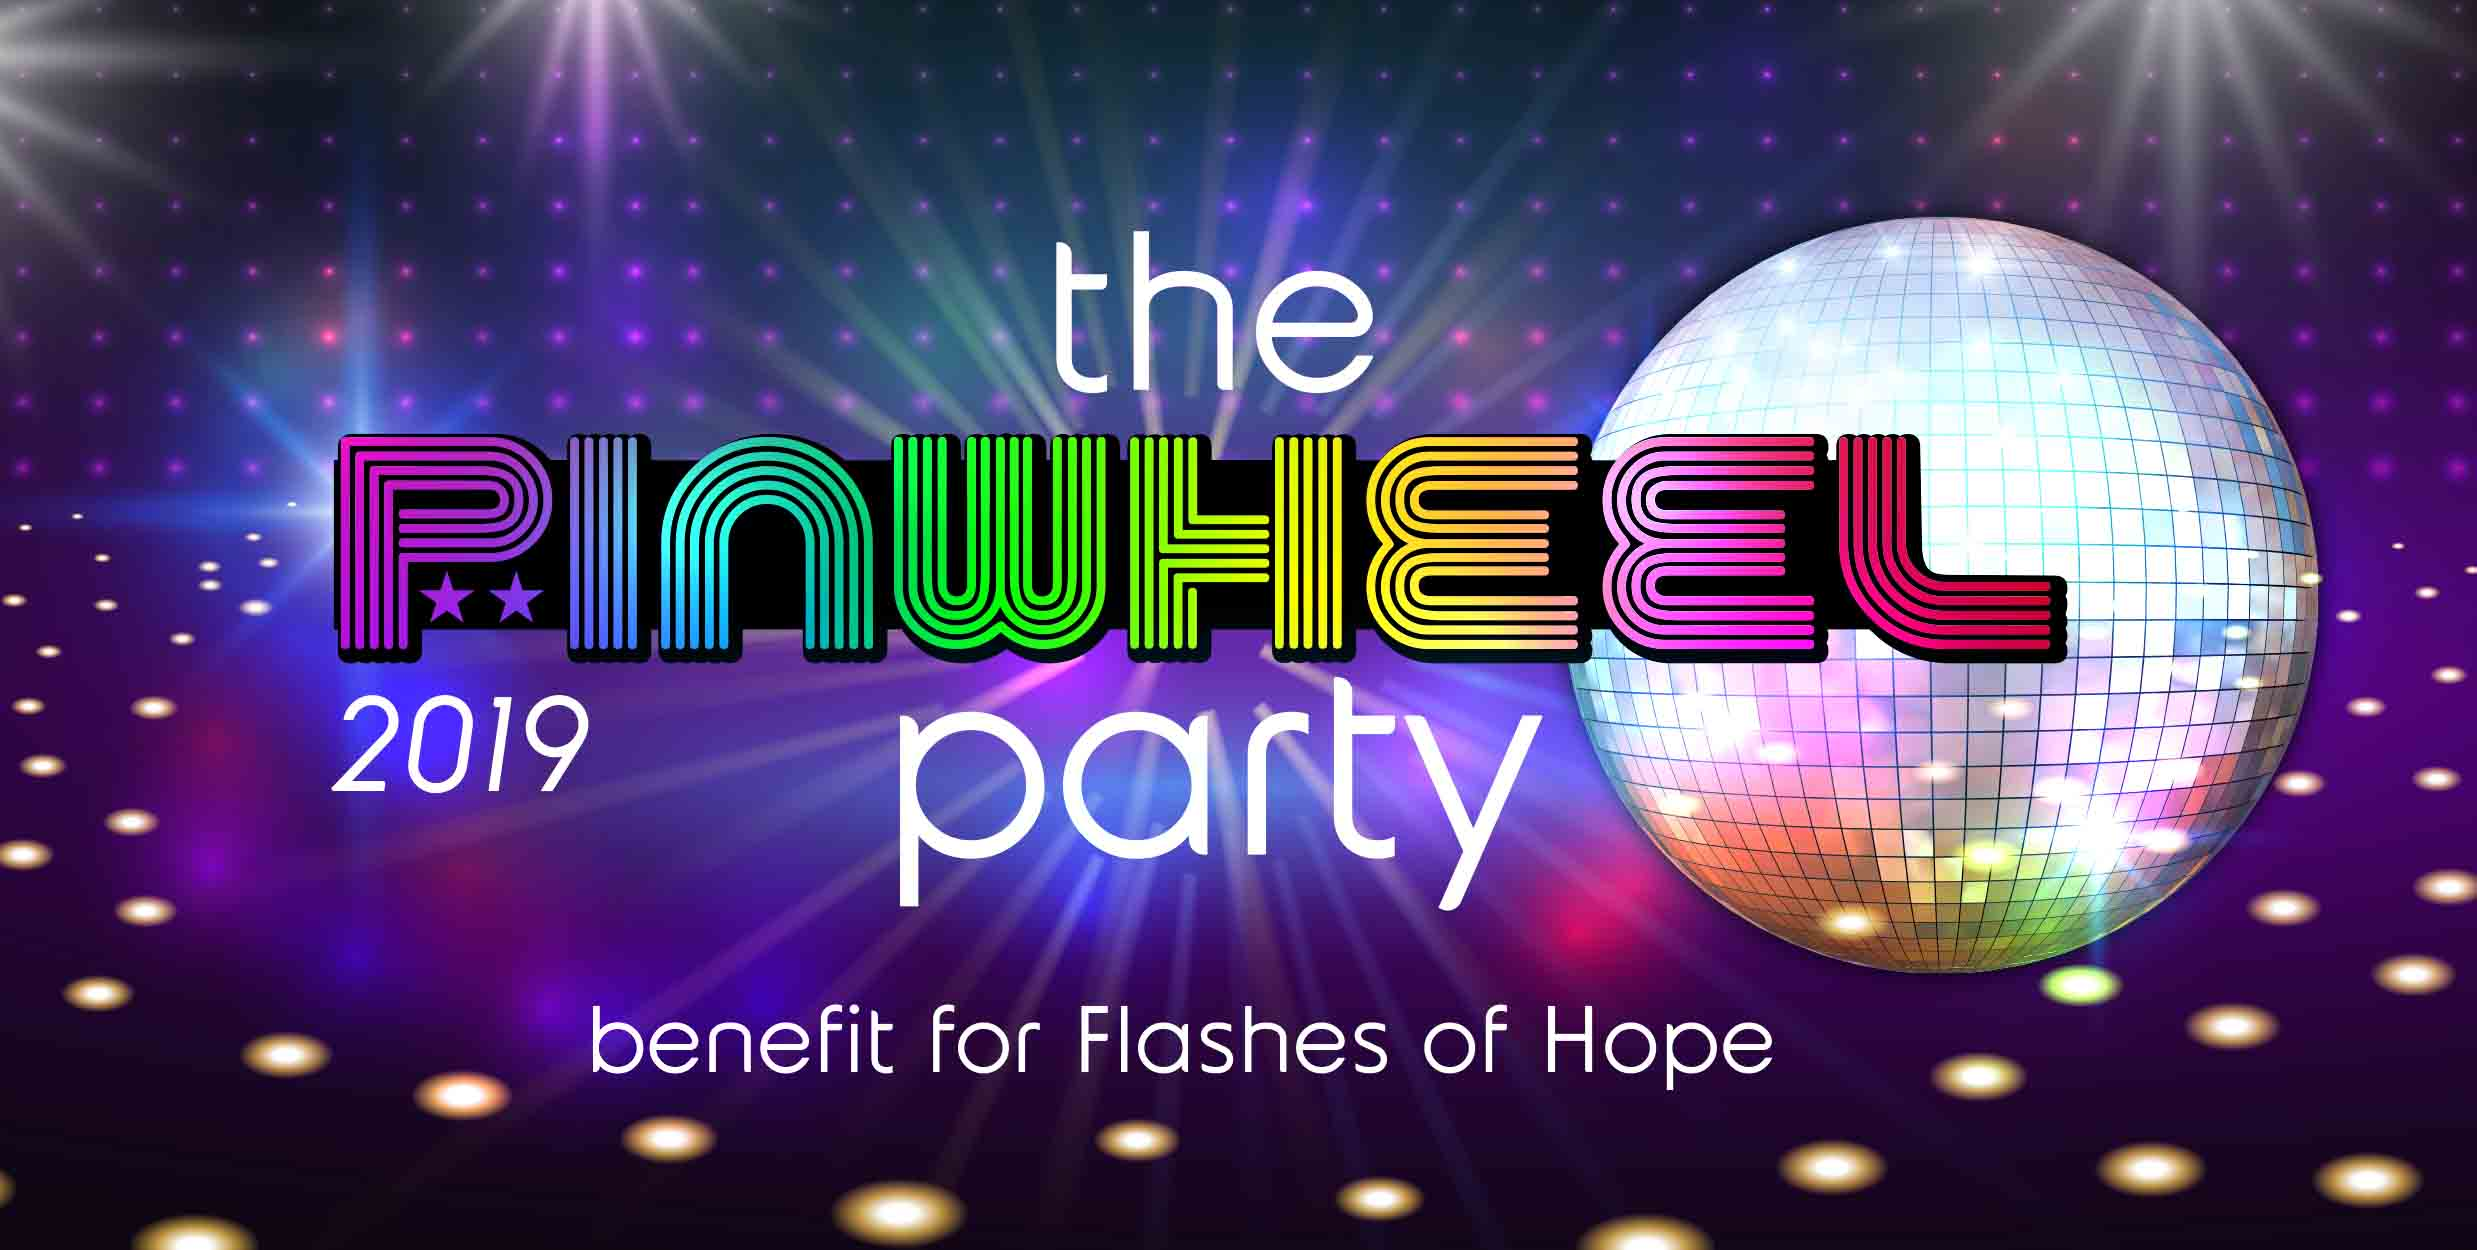 The Pinwheel Party 2019 Flashes Of Hope